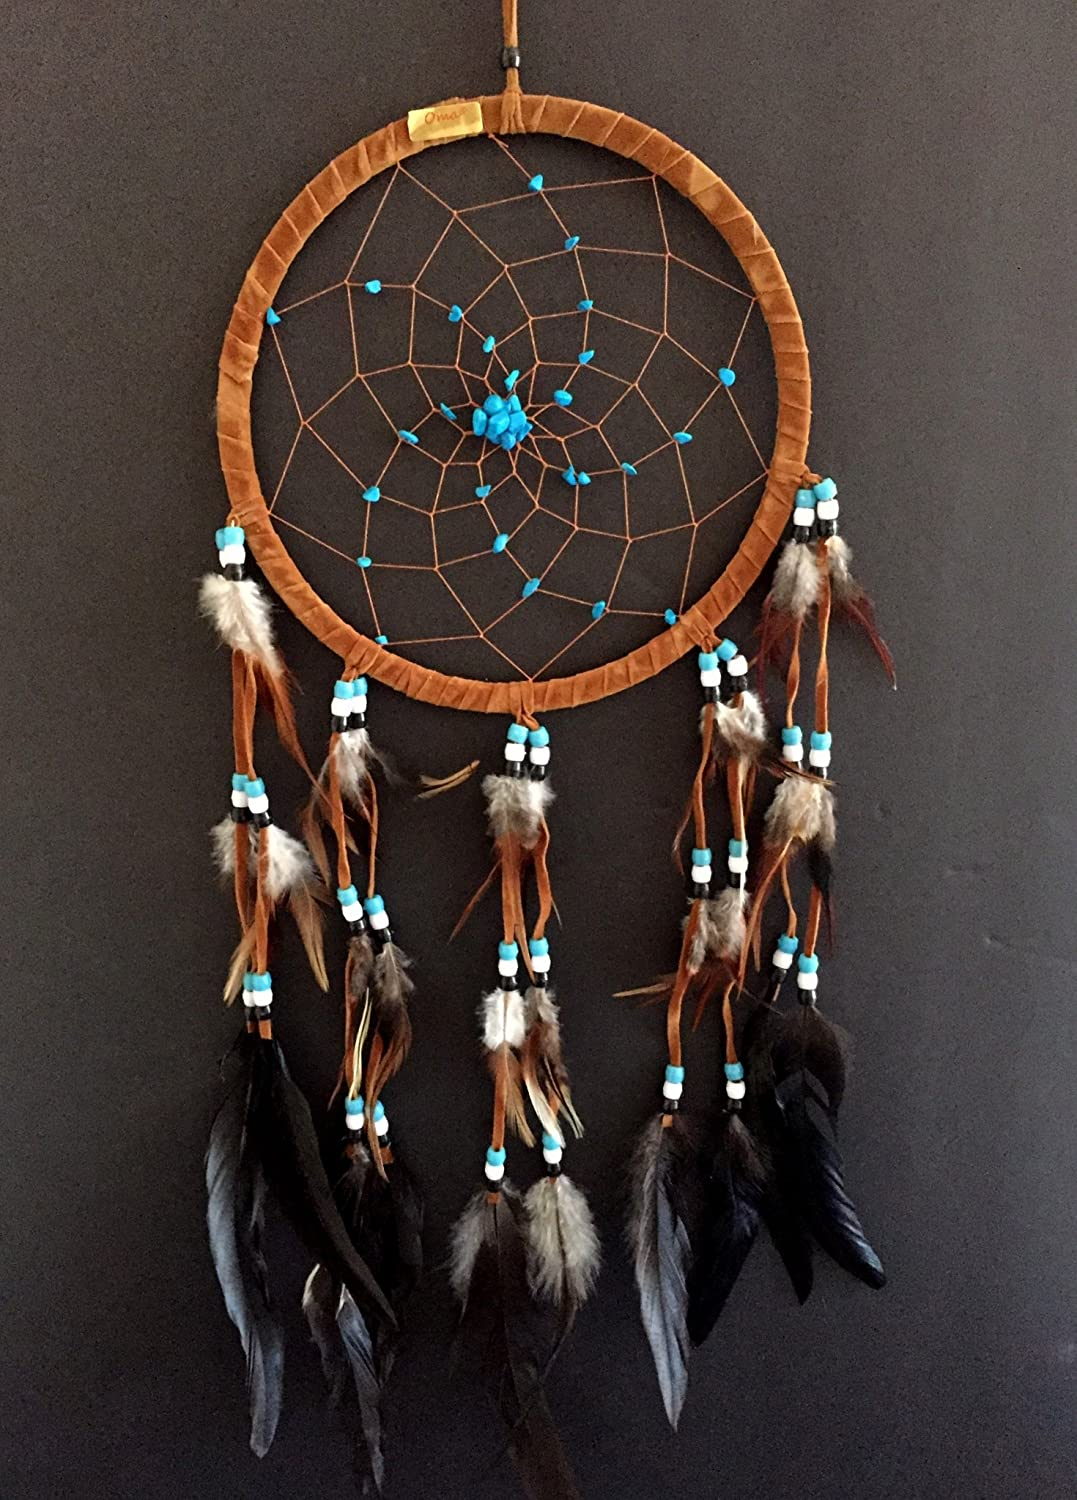 """Dream Catcher Dreamcatcher - Brown Suede with Turquoise Details - Handmade, Large Size - 28"""" Long x 9"""" Diameter - OMA Brand"""